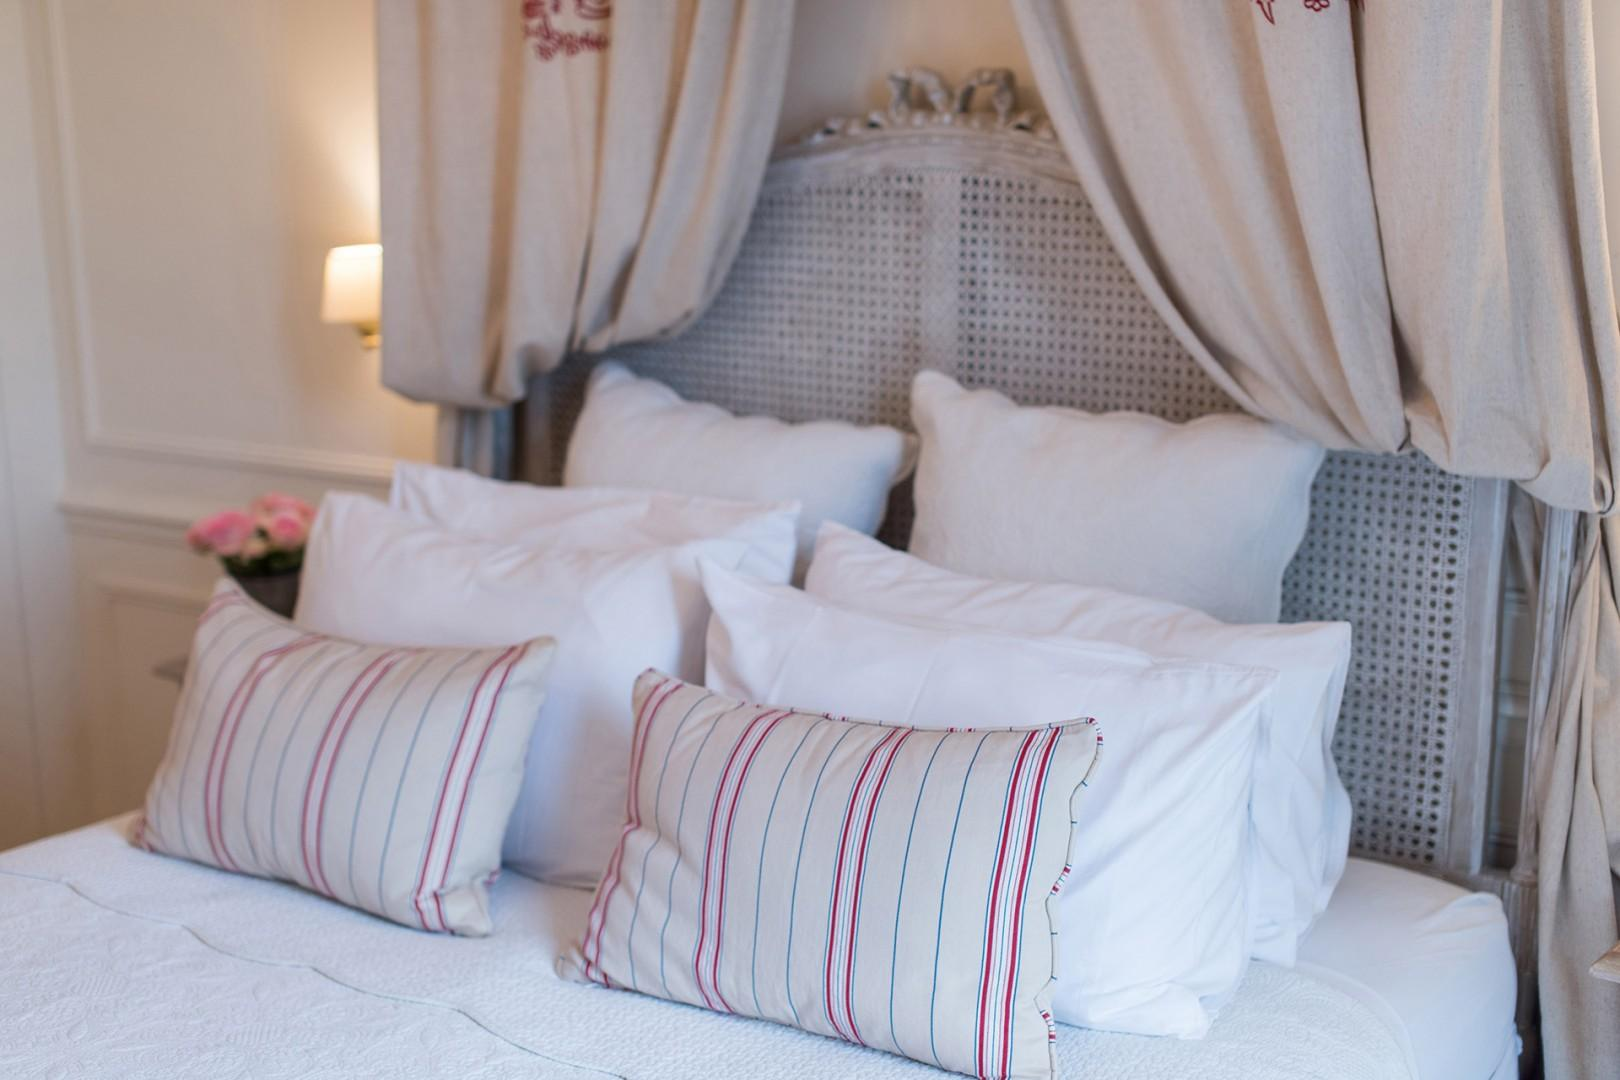 Sink into the luxurious bedding and get a good night's sleep.